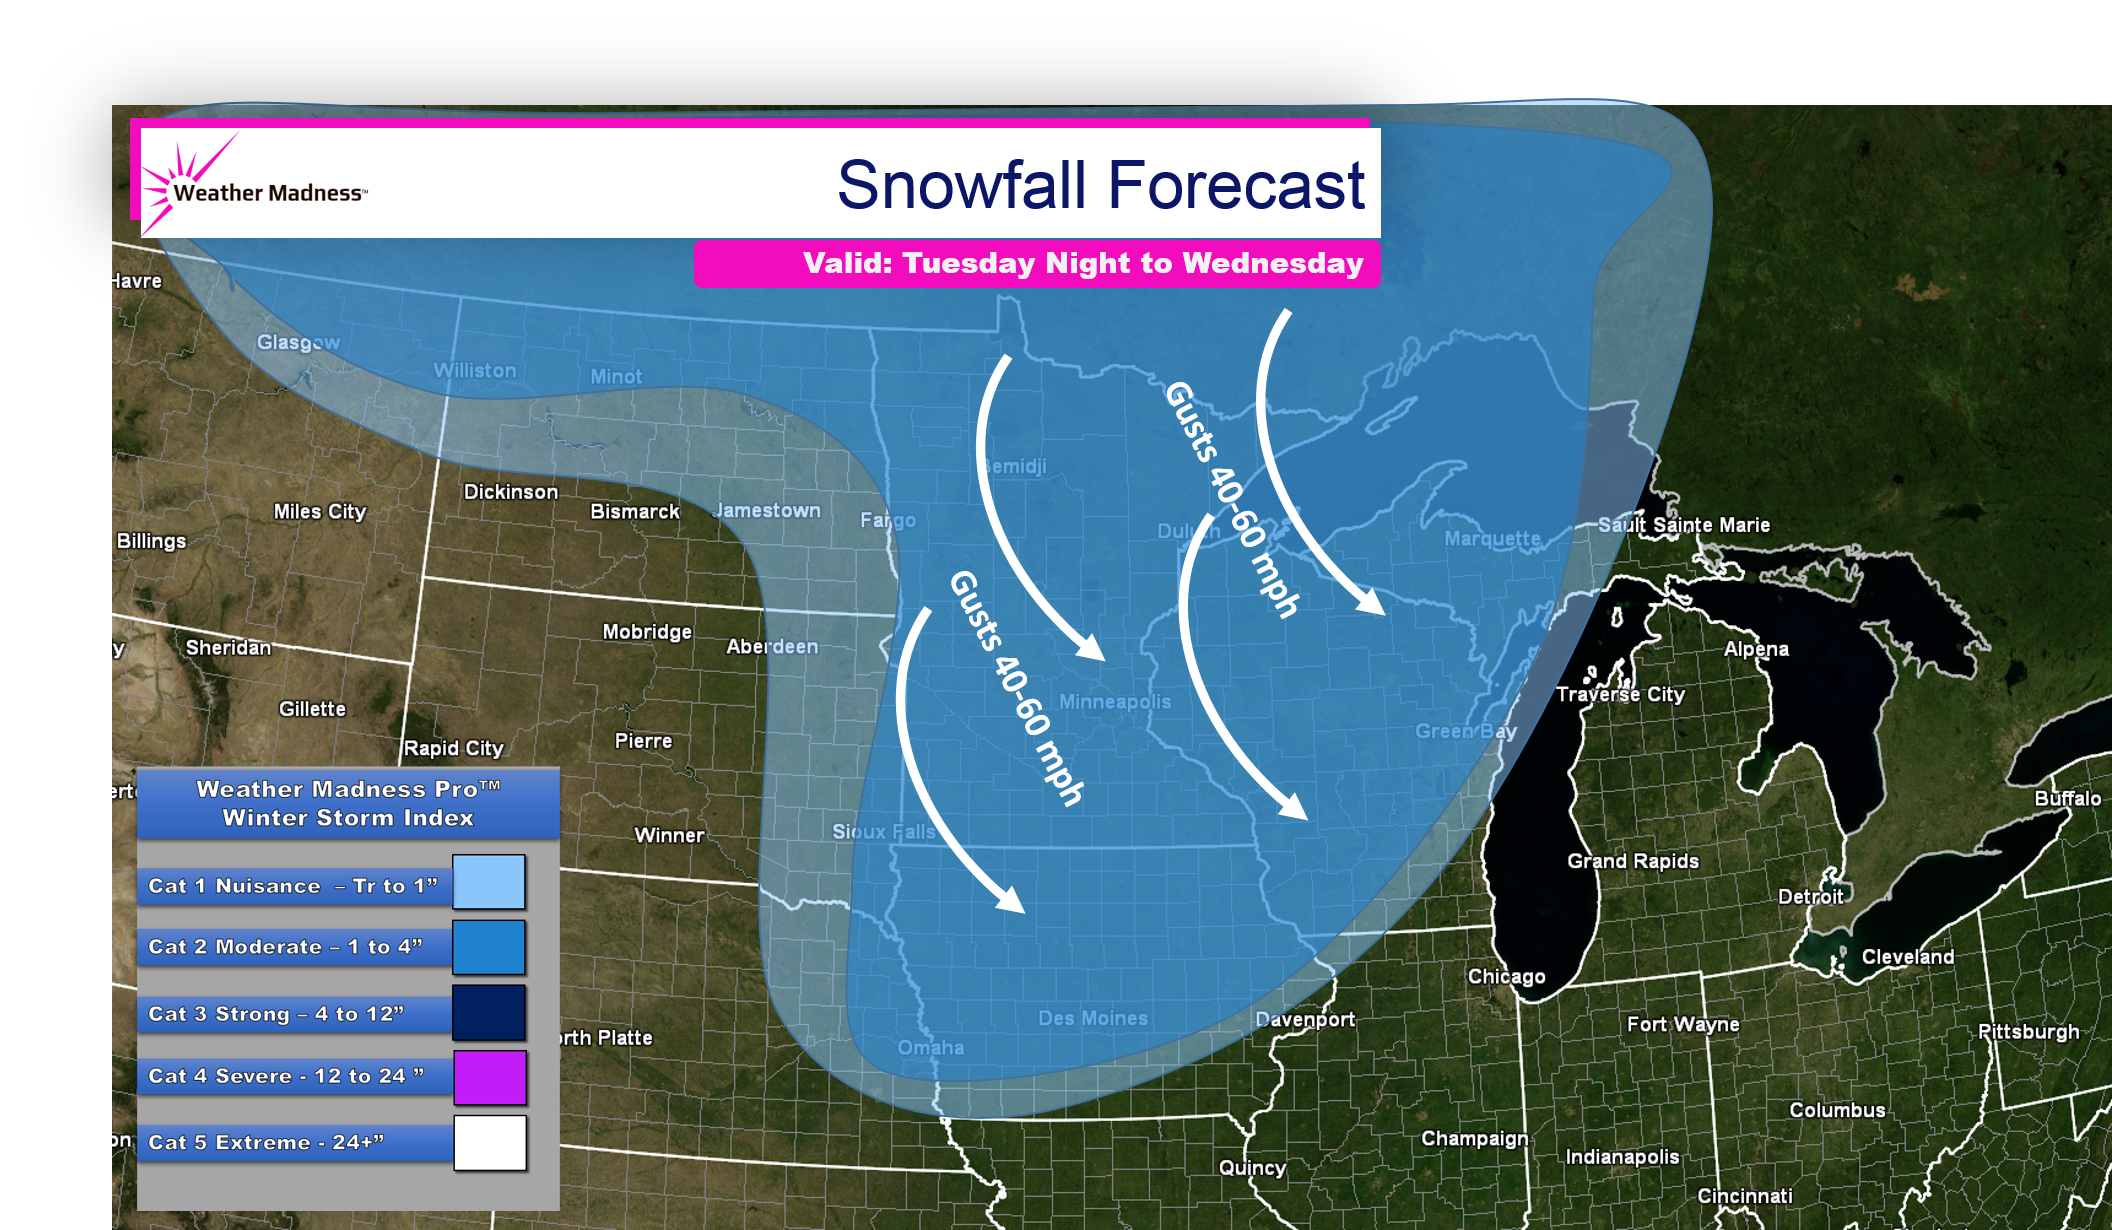 Blizzard across the Northern Plains, Snow and Flash Freezes Coming East